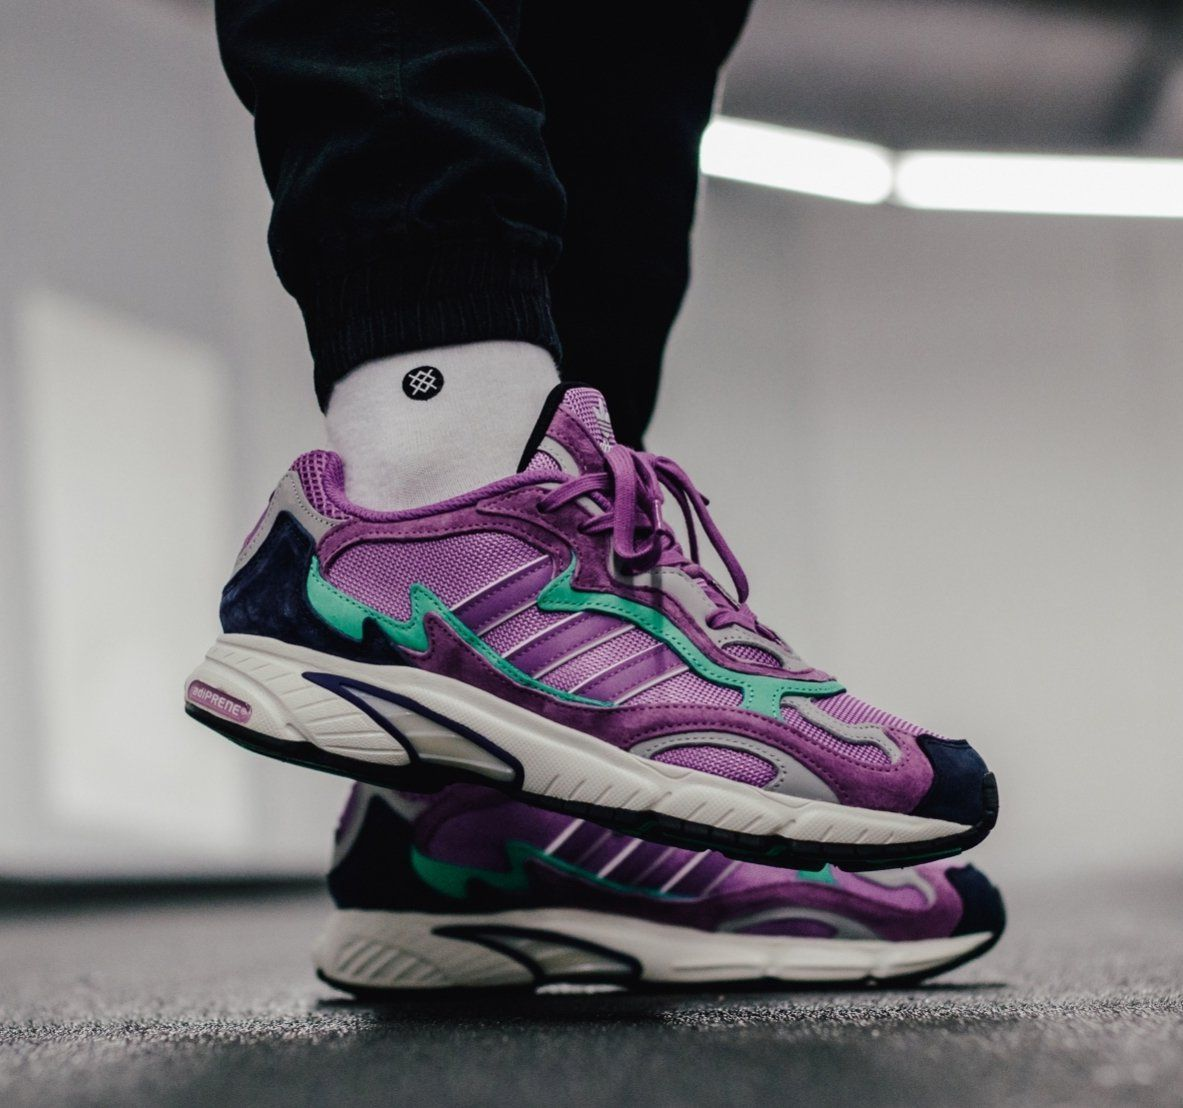 adidas Temper Run OG &quot;Shock Purple&quot; is available for $98 (Retail $140) + FREE SHIPPING  Use code ADIFAM here:  https:// bit.ly/2O9W3K4  &nbsp;  <br>http://pic.twitter.com/CjXYrkzqr3